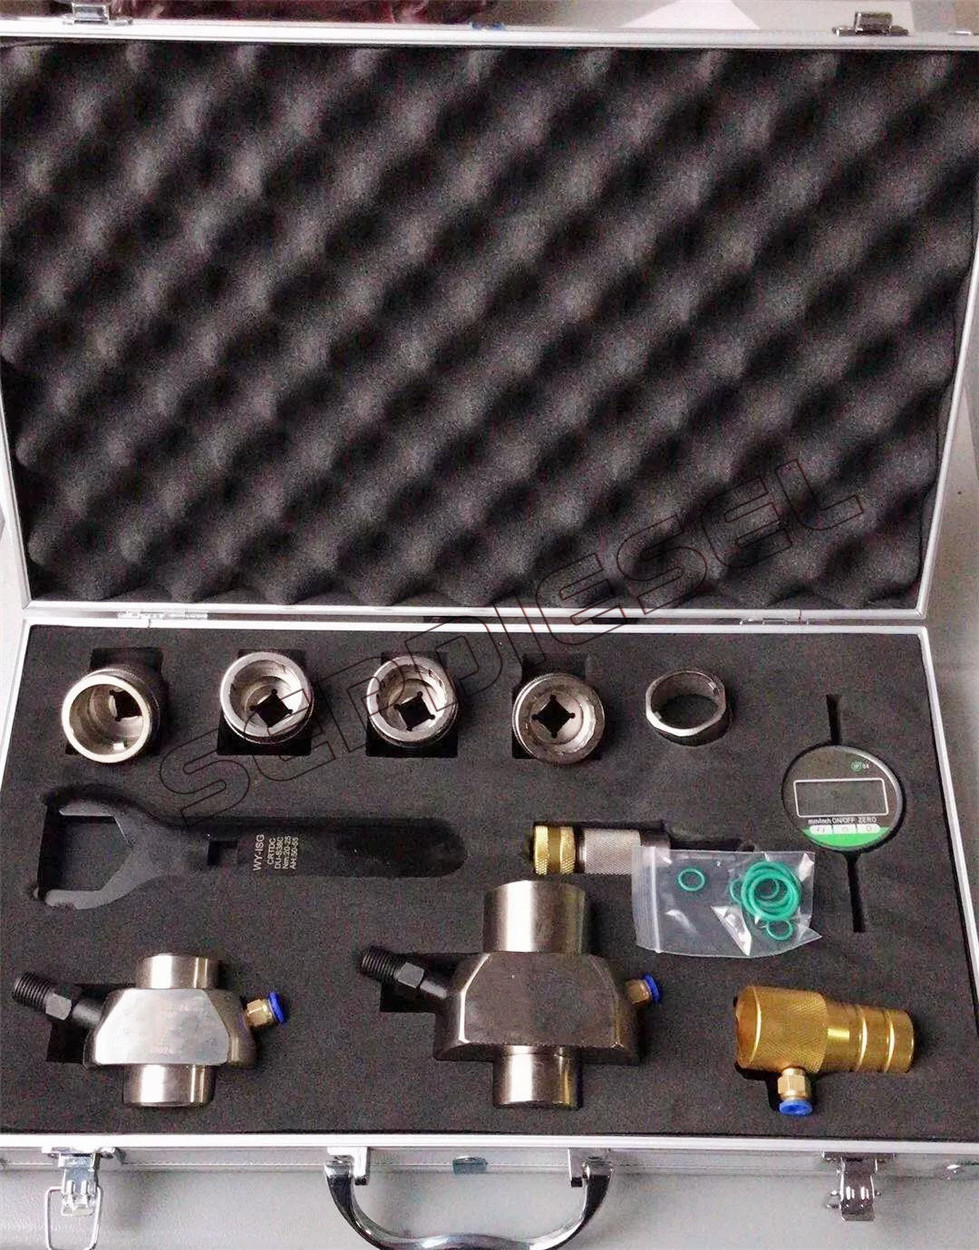 Sdt25 Injector Disassembling Measuring Repair Tools For CUMMINS Isg B